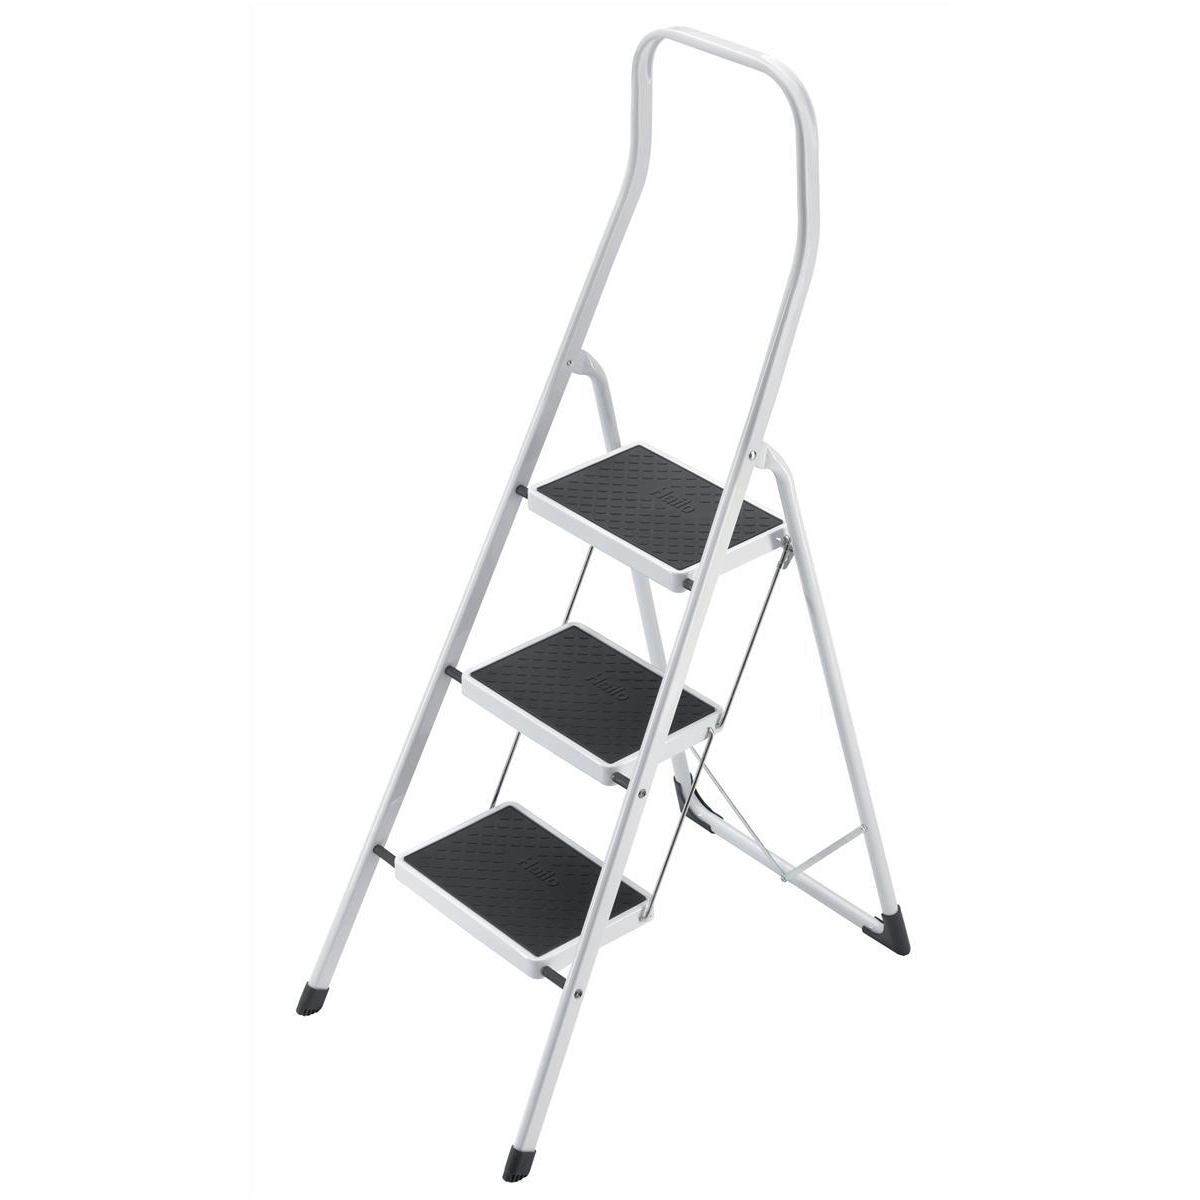 Image for 5 Star Facilities Safety Steps Folding Safety Rail H0.5m 3 Treads Capacity 150kg H2.49m 6.6kg